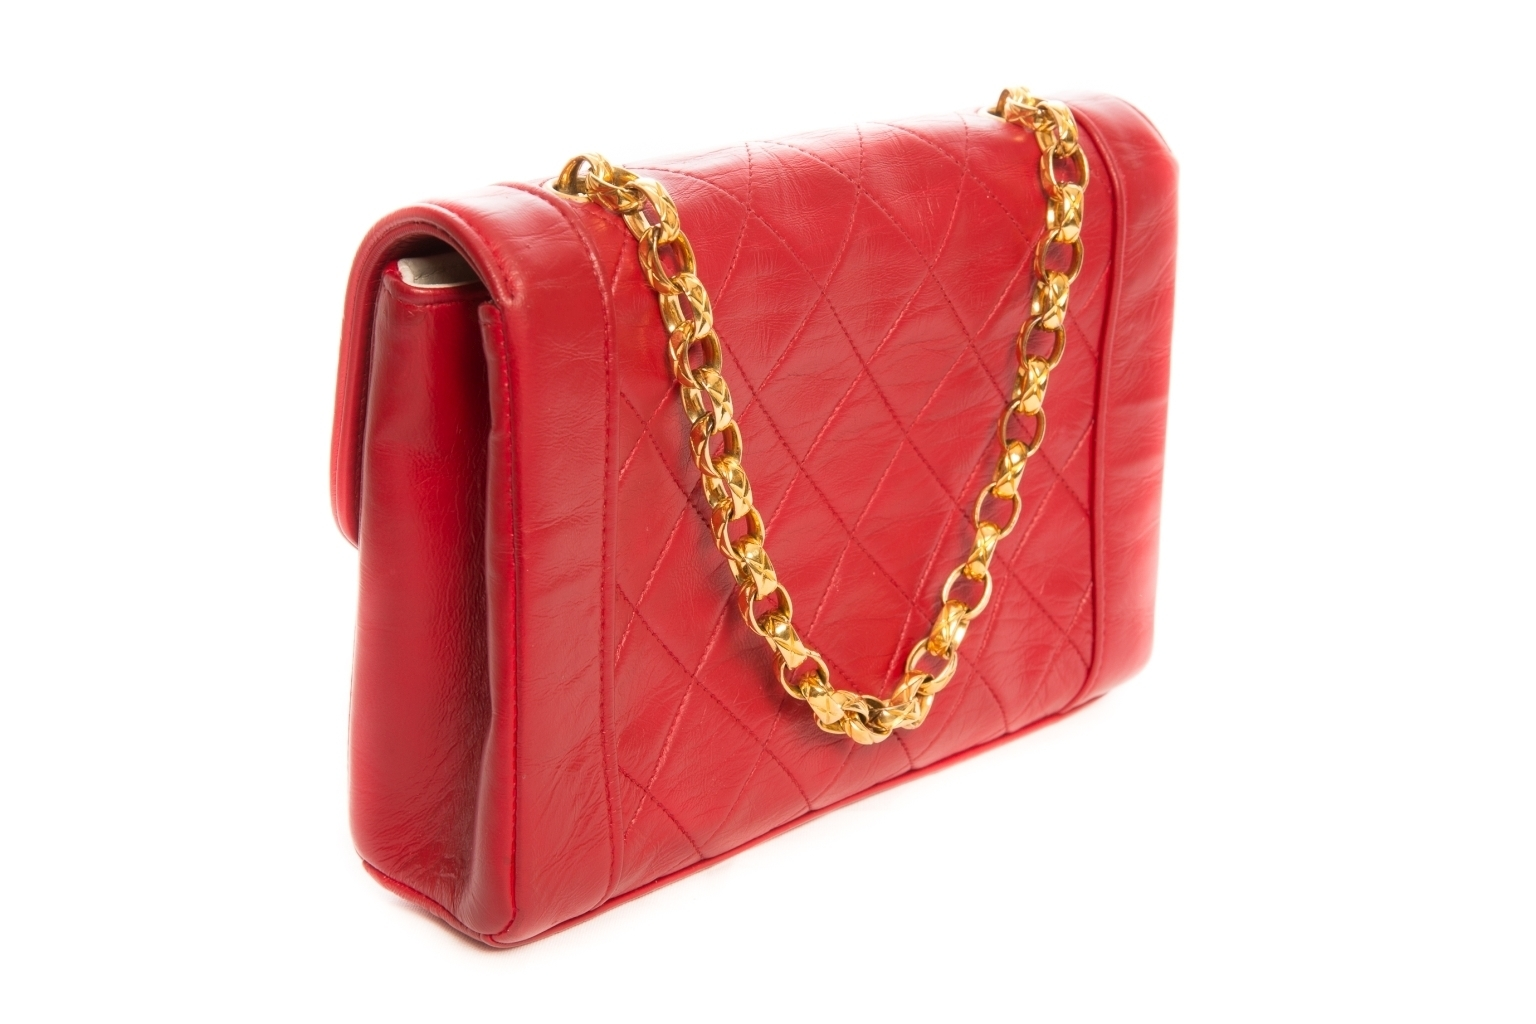 Red leather Chanel flap bag